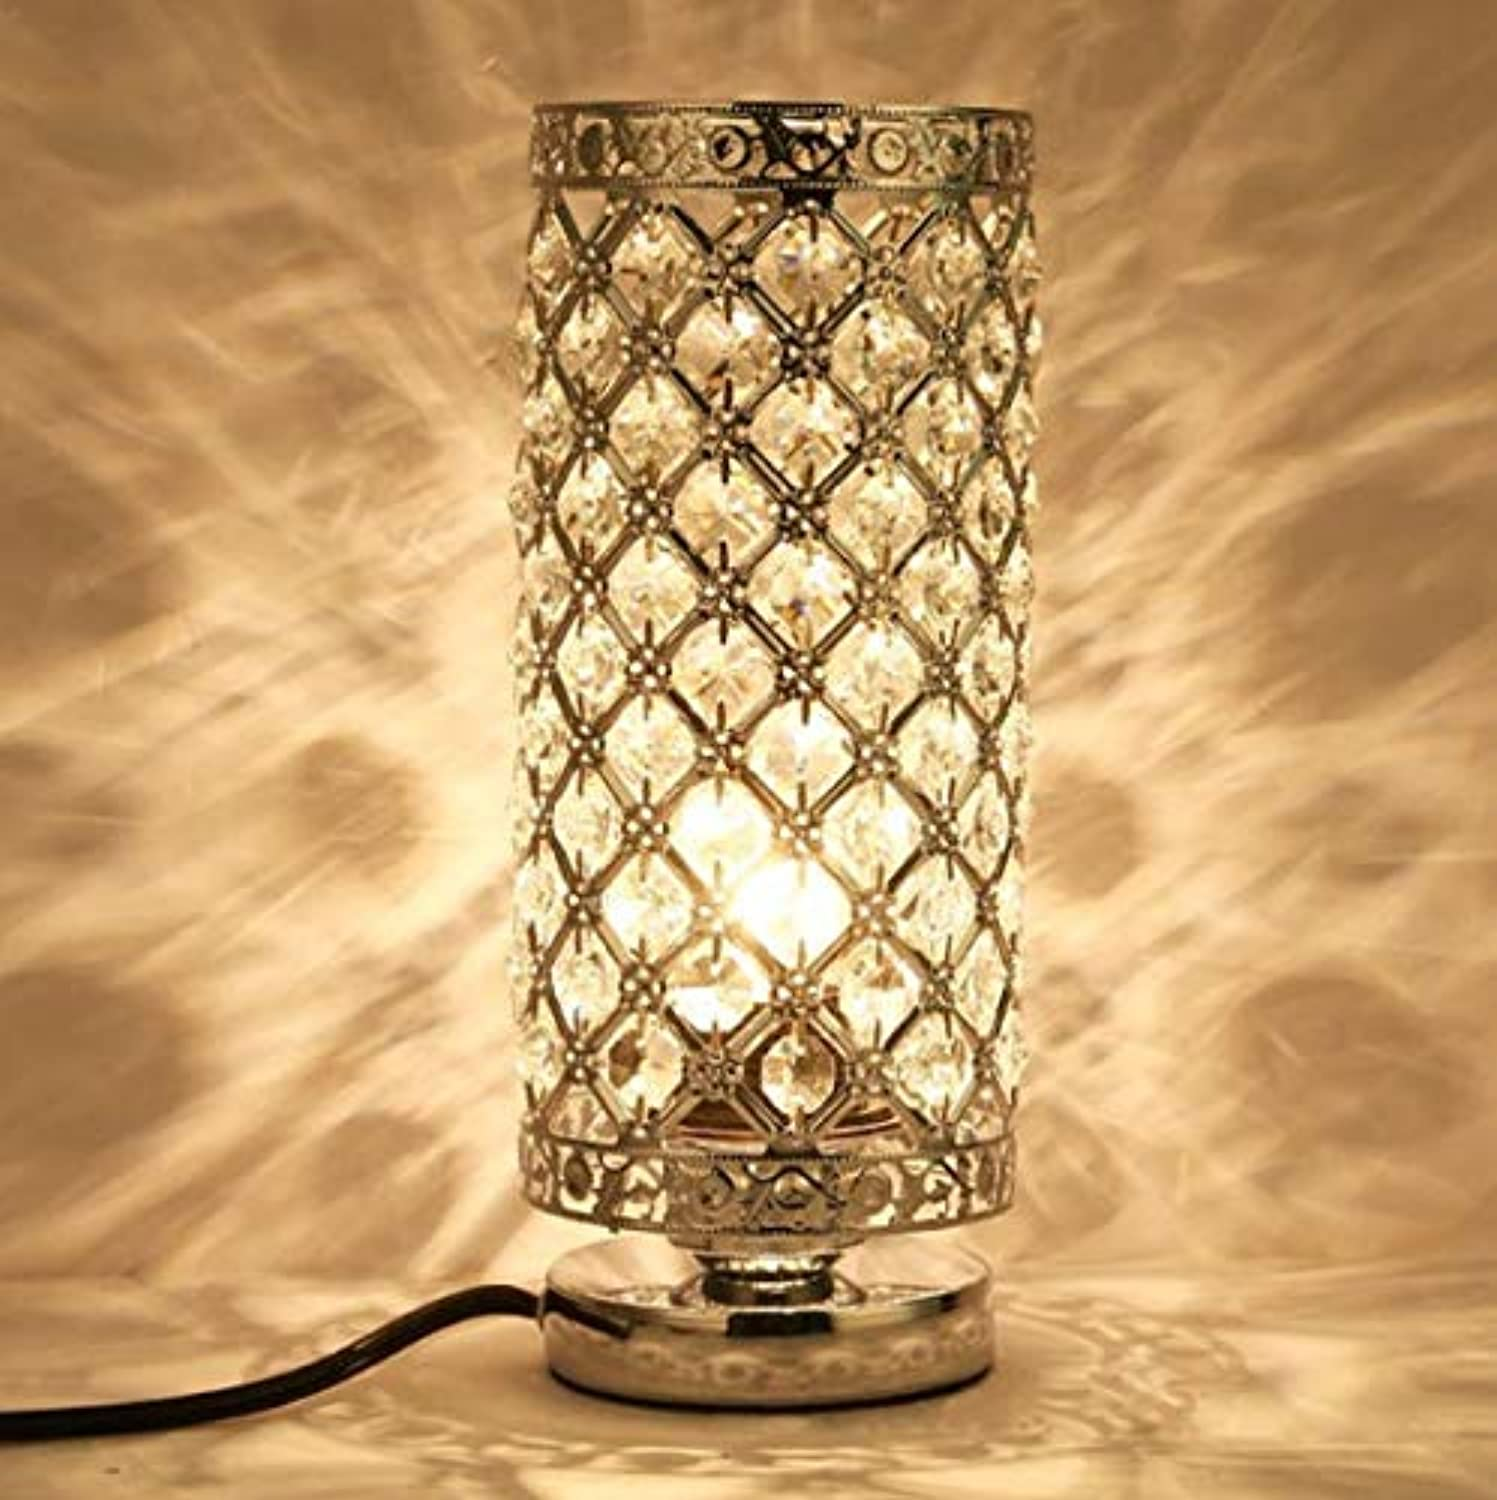 Table Lamp LED Bedroom Bedside Lamp Eyes Living Room Hotel Iron Lighting Creative Foreign Trade Crystal